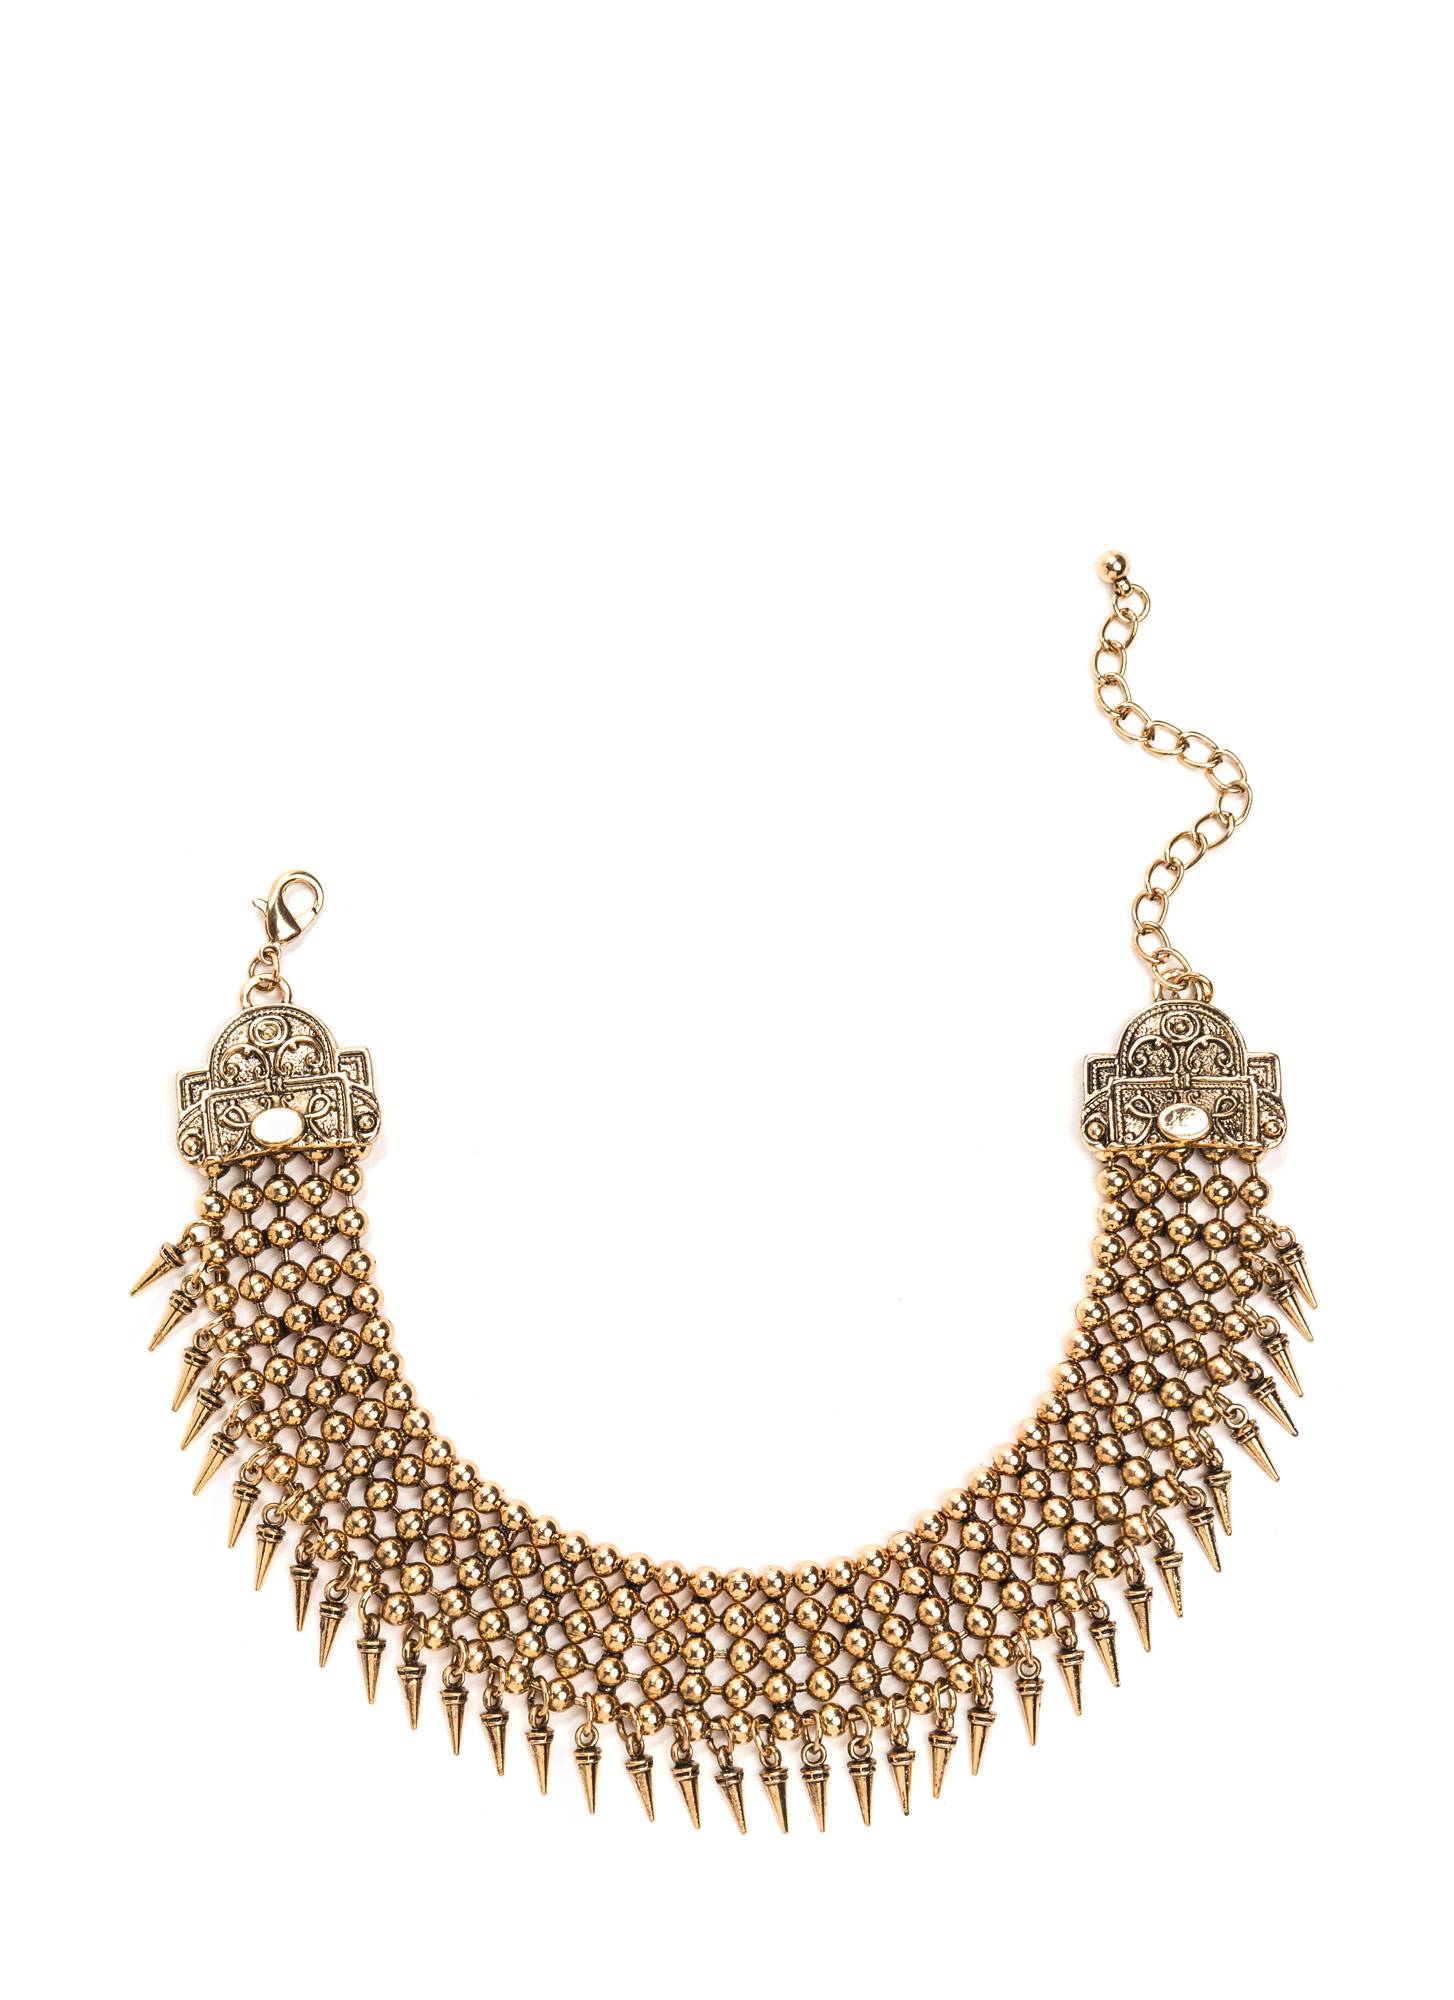 Legend Has It Metal Statement Choker DKGOLD